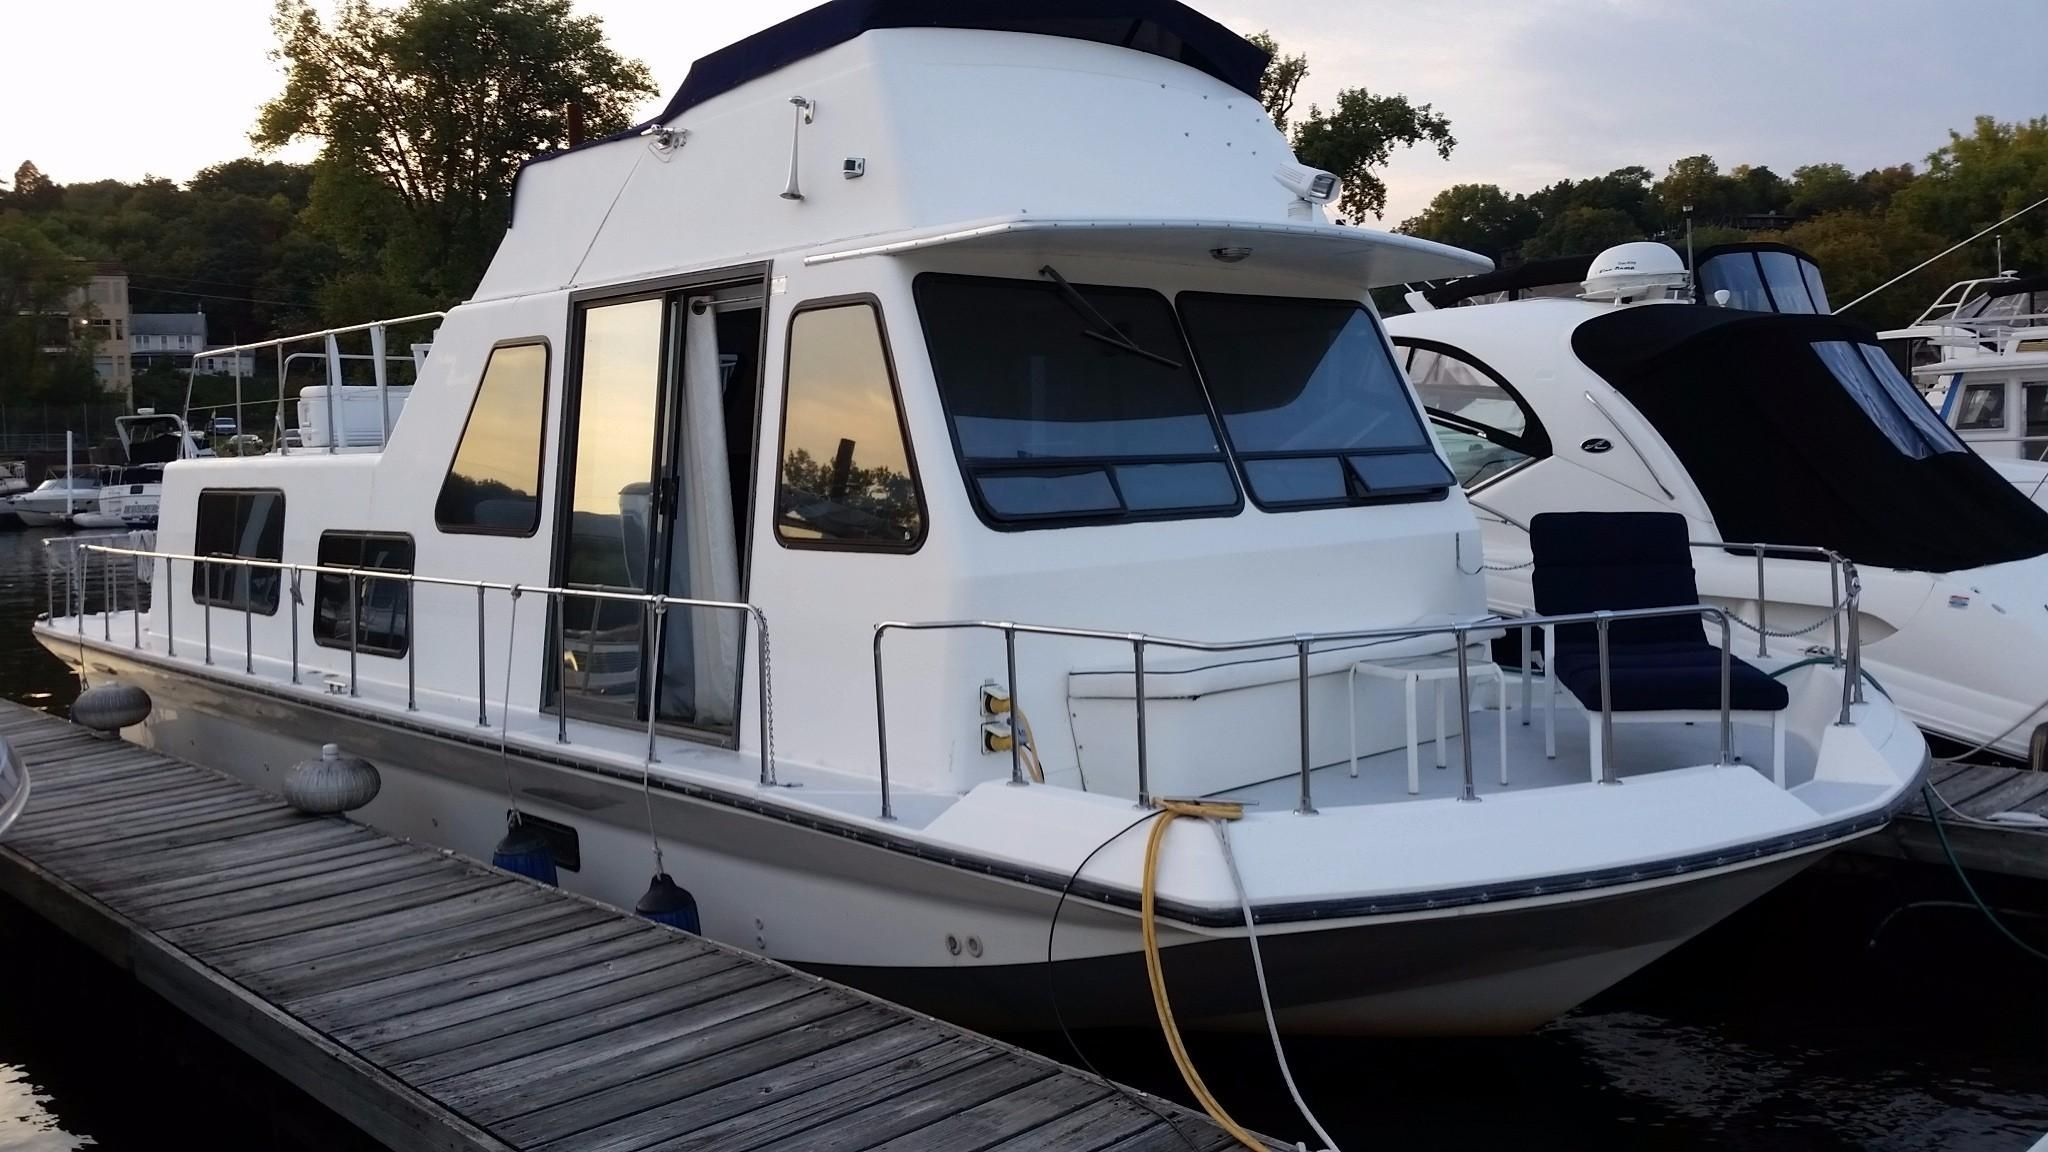 Volvos For Sale >> 1993 Holiday Mansion Houseboat Power Boat For Sale - www ...